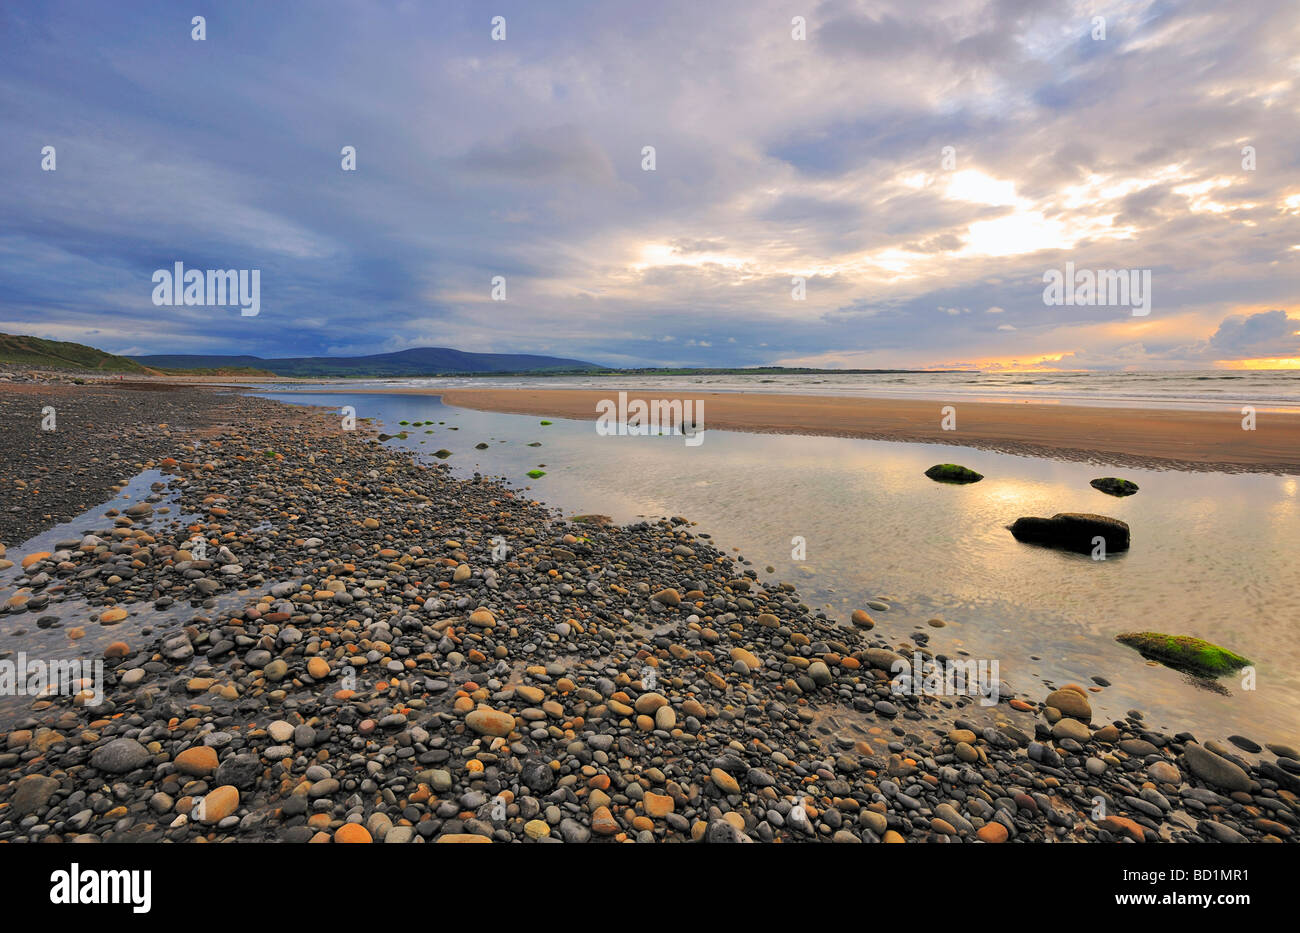 evening light illuminates beach and shoreline at Strandhill Co Sligo Ireland - Stock Image